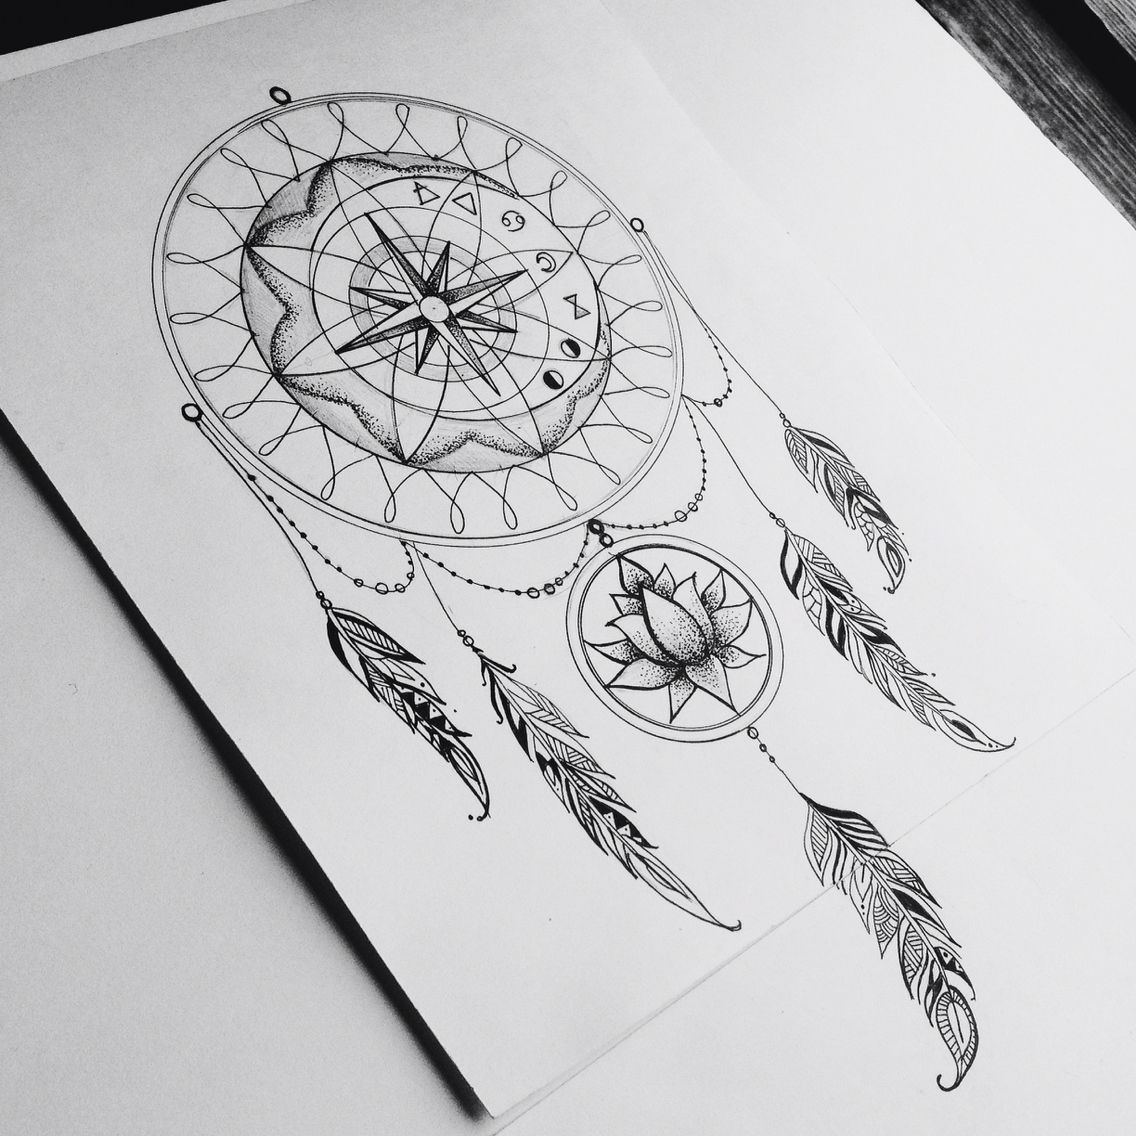 Traumfà Nger Tattoo: Image Result For Dream Catcher Compass Tattoo